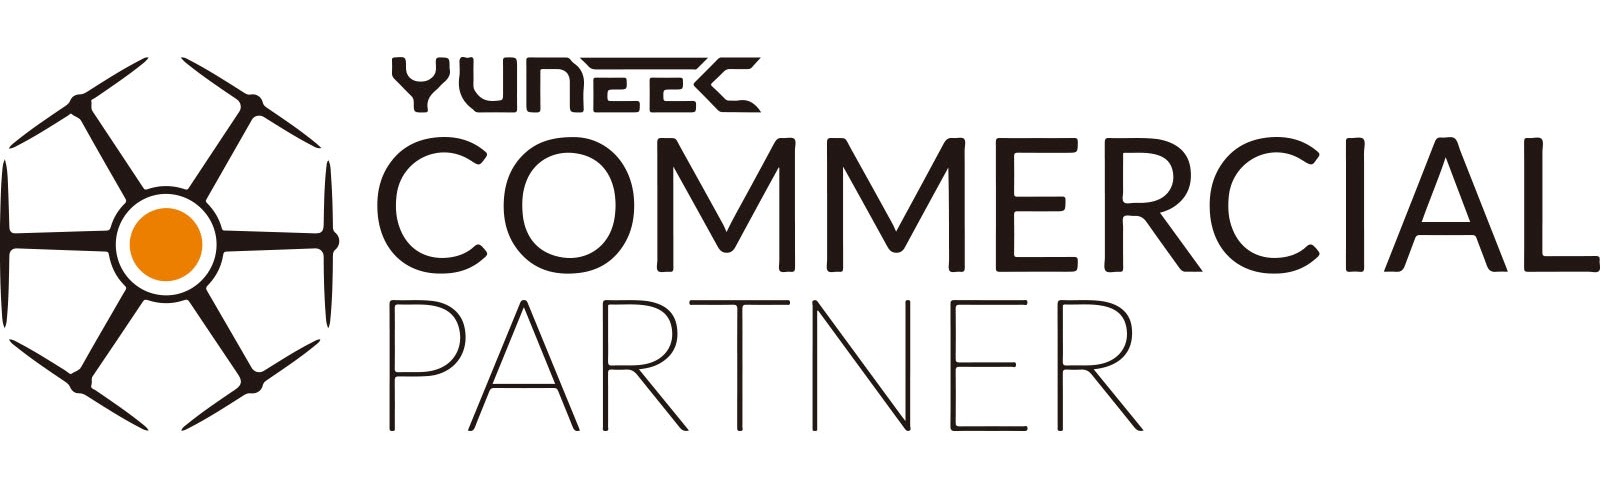 Yuneec-Commercial-Partner-Iron-Sky